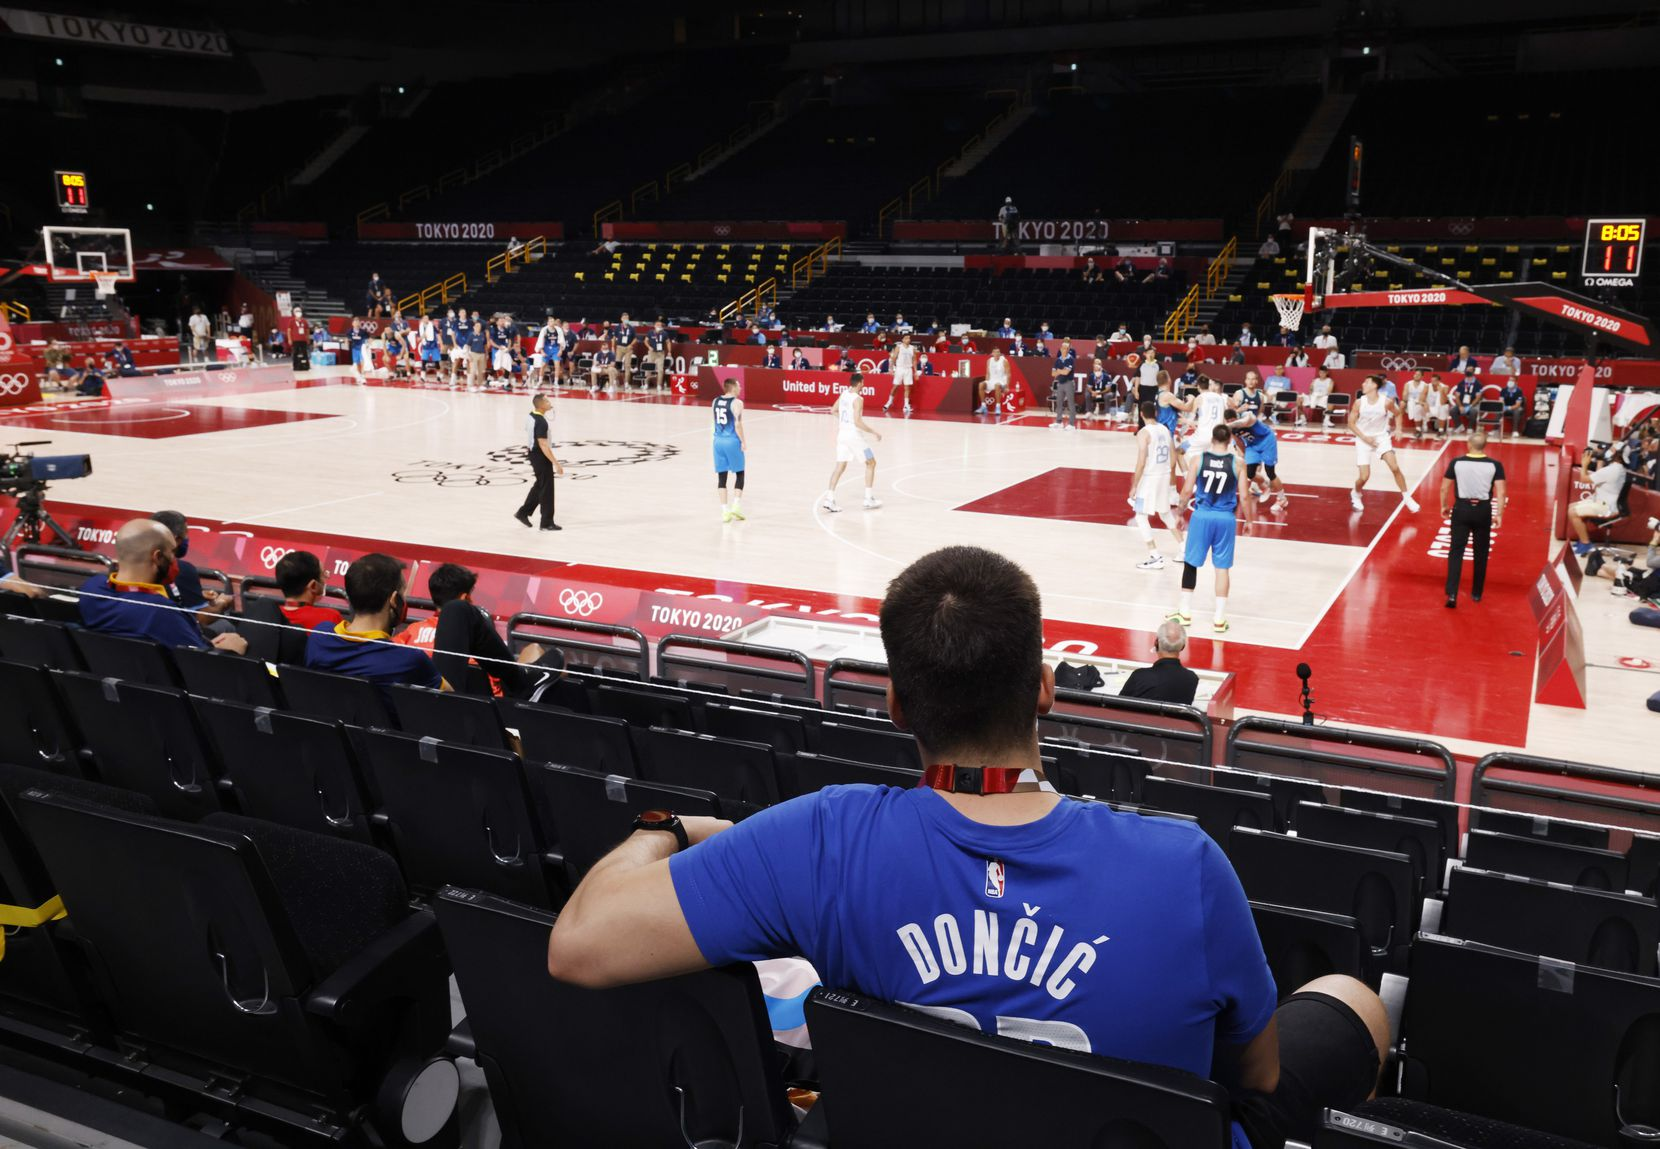 Luka Doncic fan Kristof Korsos of Hungary watches Slovenia play Argentina in the second half during the postponed 2020 Tokyo Olympics at Saitama Super Arena on Monday, July 26, 2021, in Saitama, Japan. Slovenia defeated Argentina 118-100. (Vernon Bryant/The Dallas Morning News)